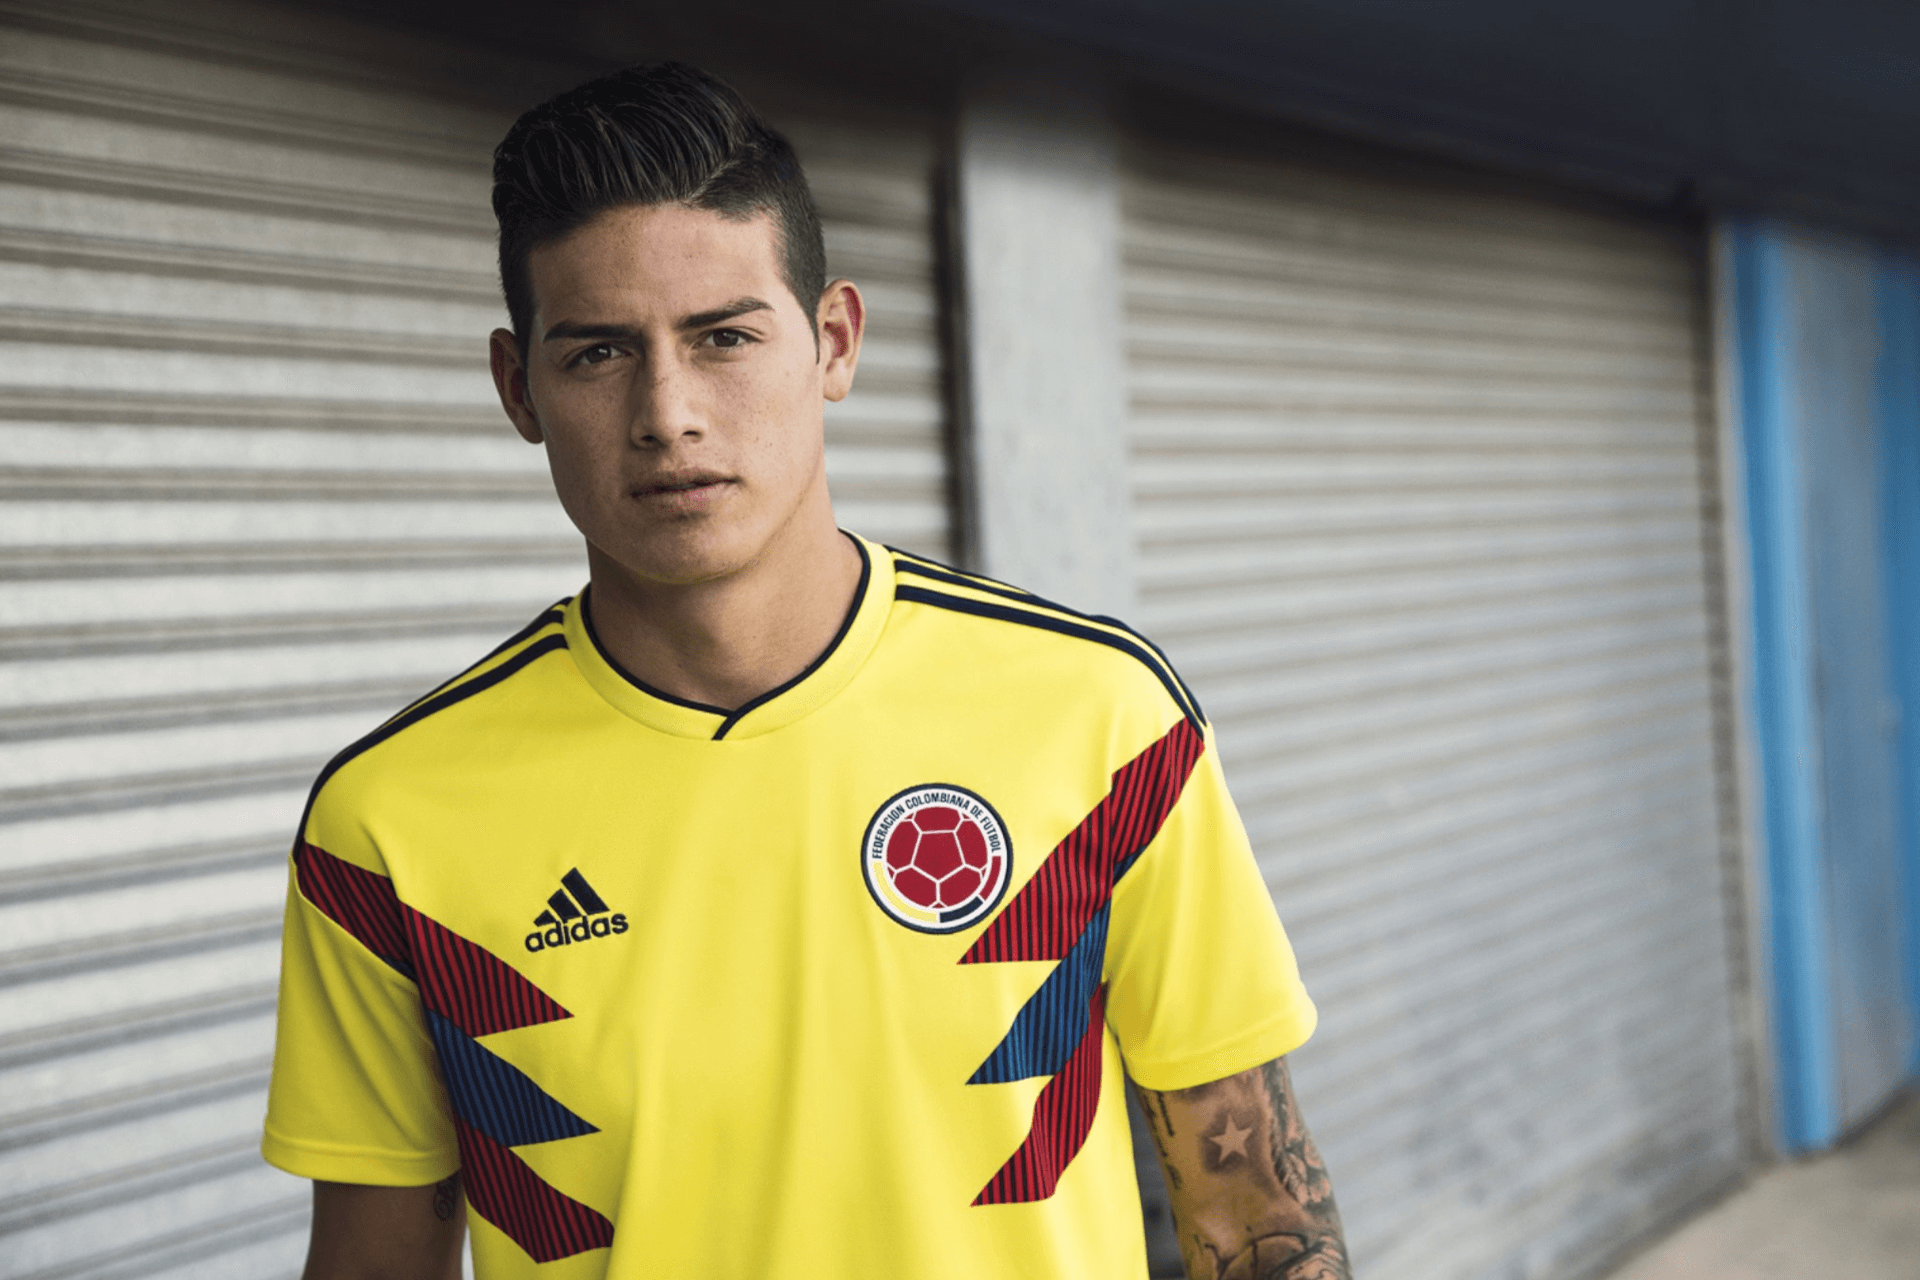 e807cc77e The Best Kits of The 2018 World Cup... So Far - Ape to Gentleman